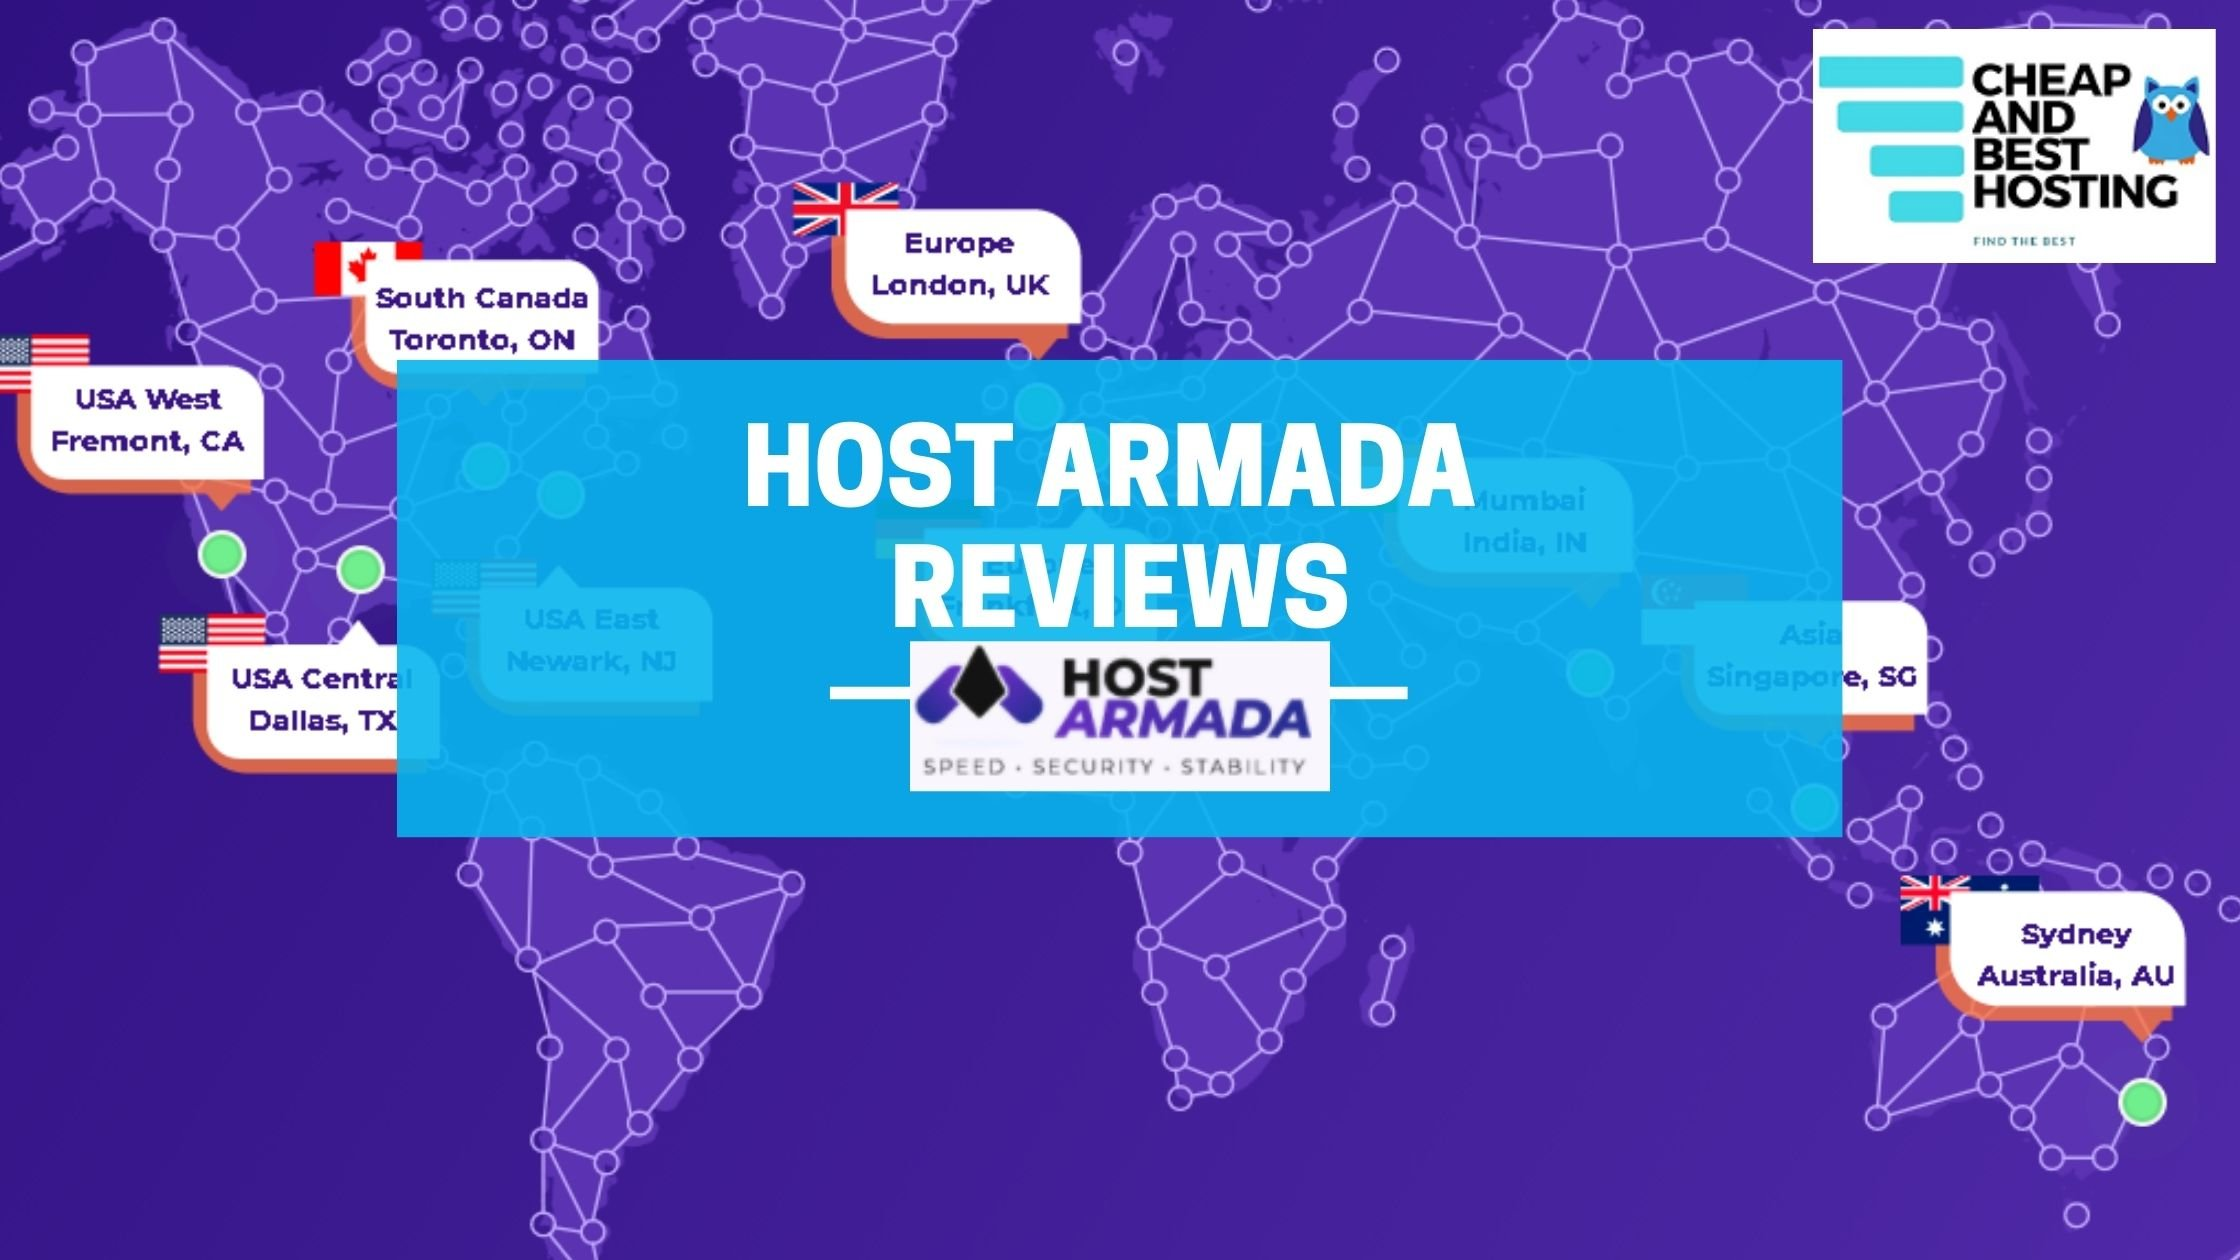 Detailed Host Armada Review. HostArmada